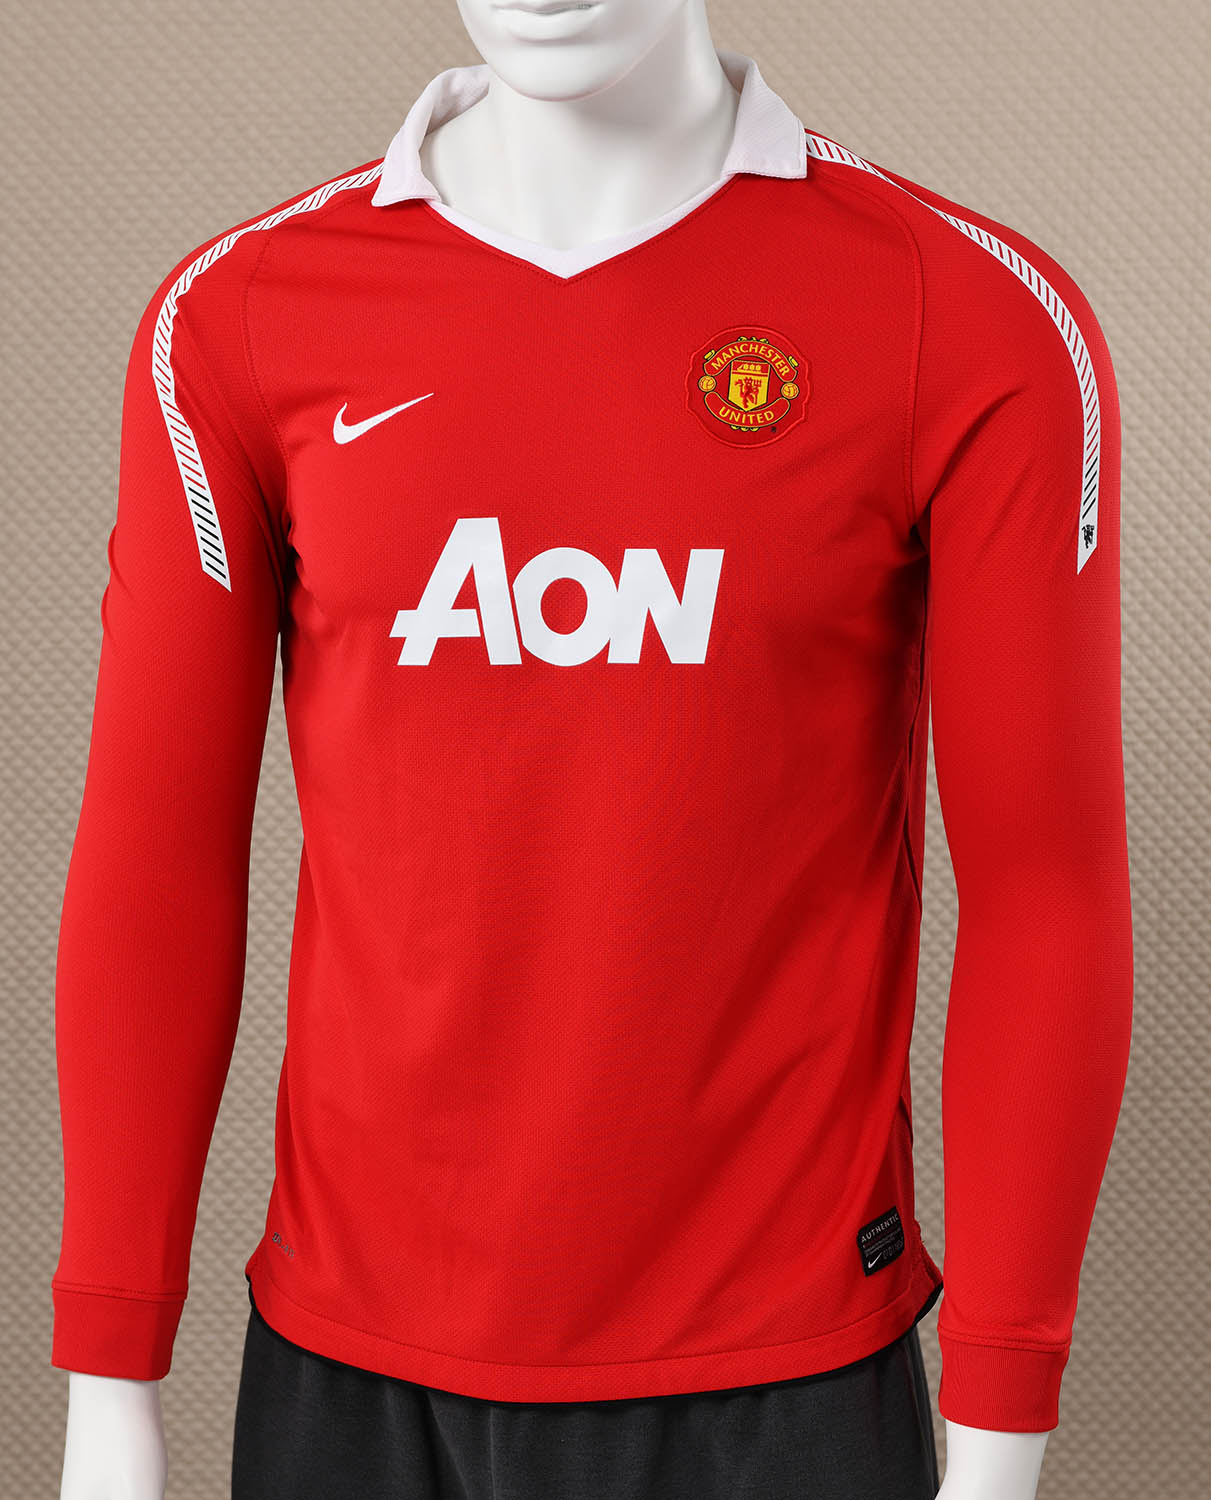 19ebb6106 Manchester United Long Sleeved Jersey Sportshistorycollectiblescom